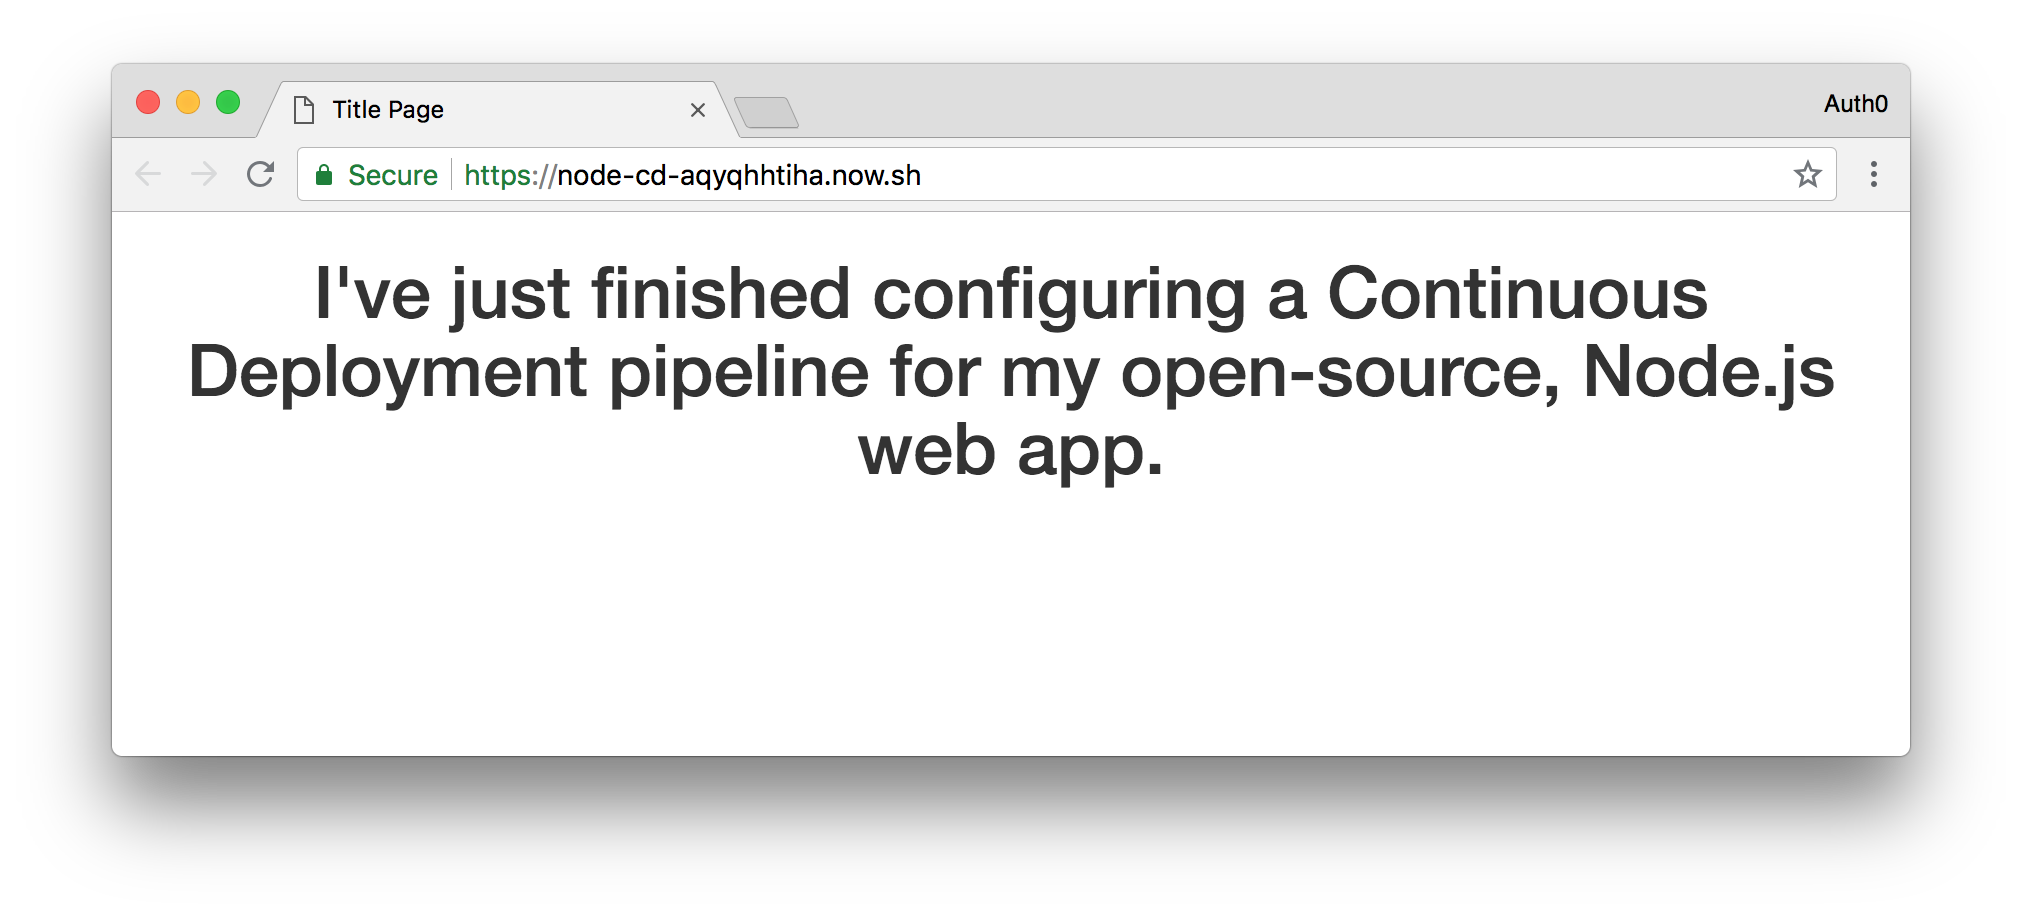 The second deployment of the open-source web app